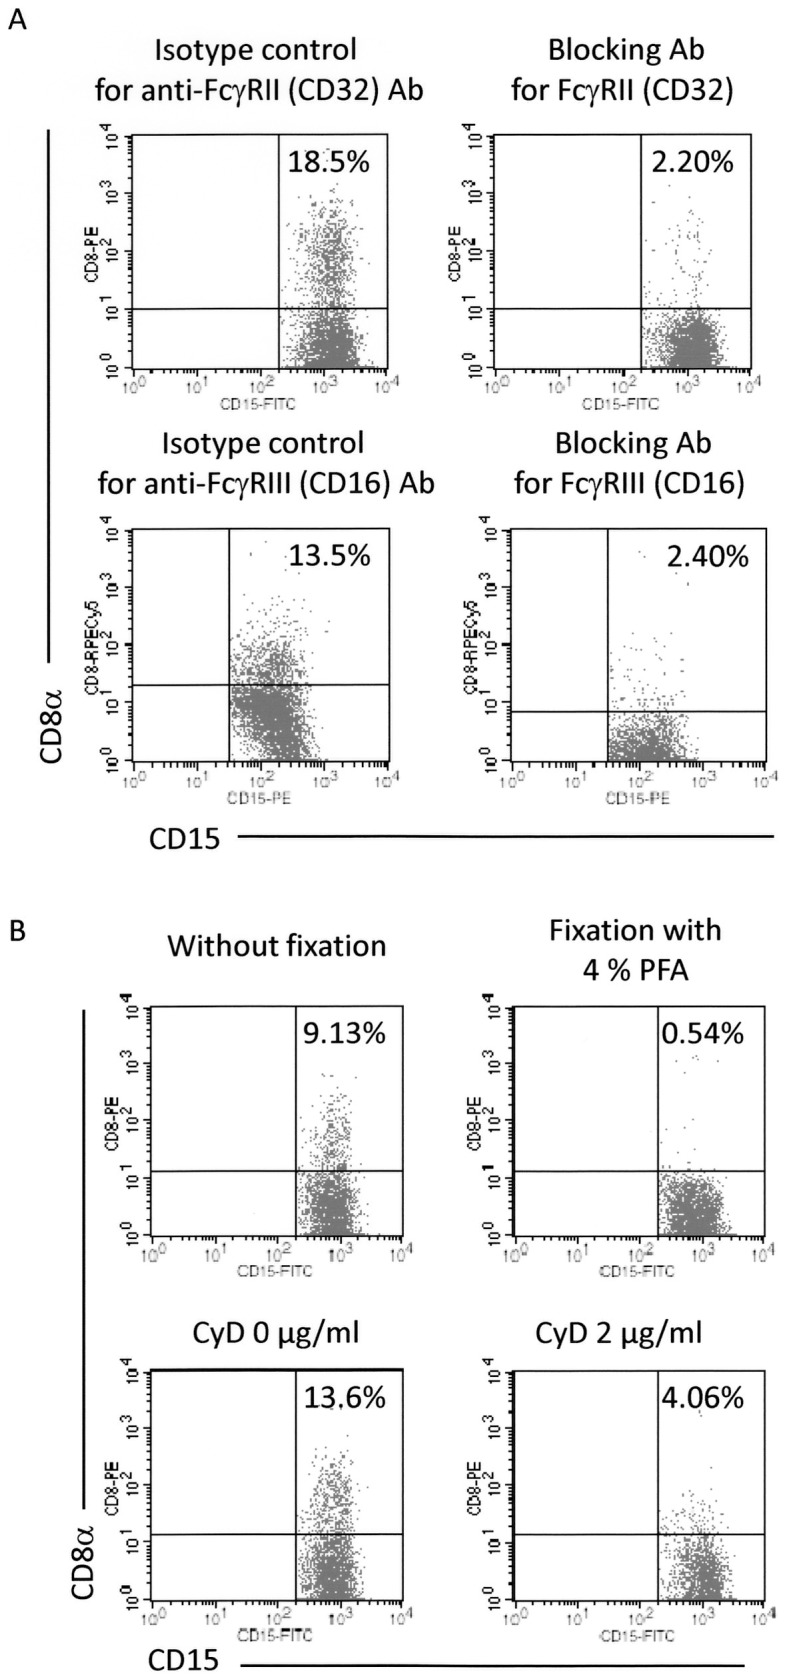 Requirement of FcγRs, dynamism of plasma membrane, and actin recruitment in detection of CD8 + granulocytes. ( A ) Involvement of FcγRII (CD32) and FcγRIII (CD16) in the detection of CD8 + granulocytes. Heparinized blood samples were pre-incubated with the anti- FcγRII (CD32) Ab (AT10) or with the anti-FcγRIII (CD16) Ab (3G8). After the pre-incubation, the samples were made to react with the PE or PECy5-labeled anti-CD8α Ab (HIT8a). After depletion of erythrocytes, the cells were re-suspended in PBS followed by reaction with the FITC or PE-labeled anti-CD15 Ab (H198), and then served for FCM. PE or PECy5-labeled mouse IgG1 and FITC or PE-labeled mouse IgM were used as isotype-matched controls for HIT8a and H198, respectively. ( B ) Effects of plasma membrane fixation and inhibition of actin recruitment in the detection of CD8 + granulocytes. <t>PMNs</t> and <t>PBMCs</t> were mixed together. For fixation of the plasma membrane, the cells were exposed to 4% PFA for 10 min at room temperature. After washing 3 times with PBS, the cells were re-suspended in the autologous serum. The samples were made to react with the PE-labeled anti-CD8α Ab (HIT8a). After removal of unbound Abs, the cells were re-suspended in PBS followed by reaction with the FITC-labeled anti-CD15 Ab (H198), and then served for FCM. For inhibition of actin recruitment, the mixture of PMNs and PBMCs was made to react with CyD (2 µg/ml) for 30 min at 37°C. After the pre-incubation, the cells were made to react with the PE-labeled anti-CD8α Ab (HIT8a). After removal of unbound Abs, the cells were re-suspended in PBS followed by reaction with the FITC-labeled anti-CD15 (H198), and then served for FCM. PE-labeled mouse IgG1 and FITC-labeled mouse IgM were used as isotype-matched controls for HIT8a and H198, respectively. These experiments were repeated 3 times.